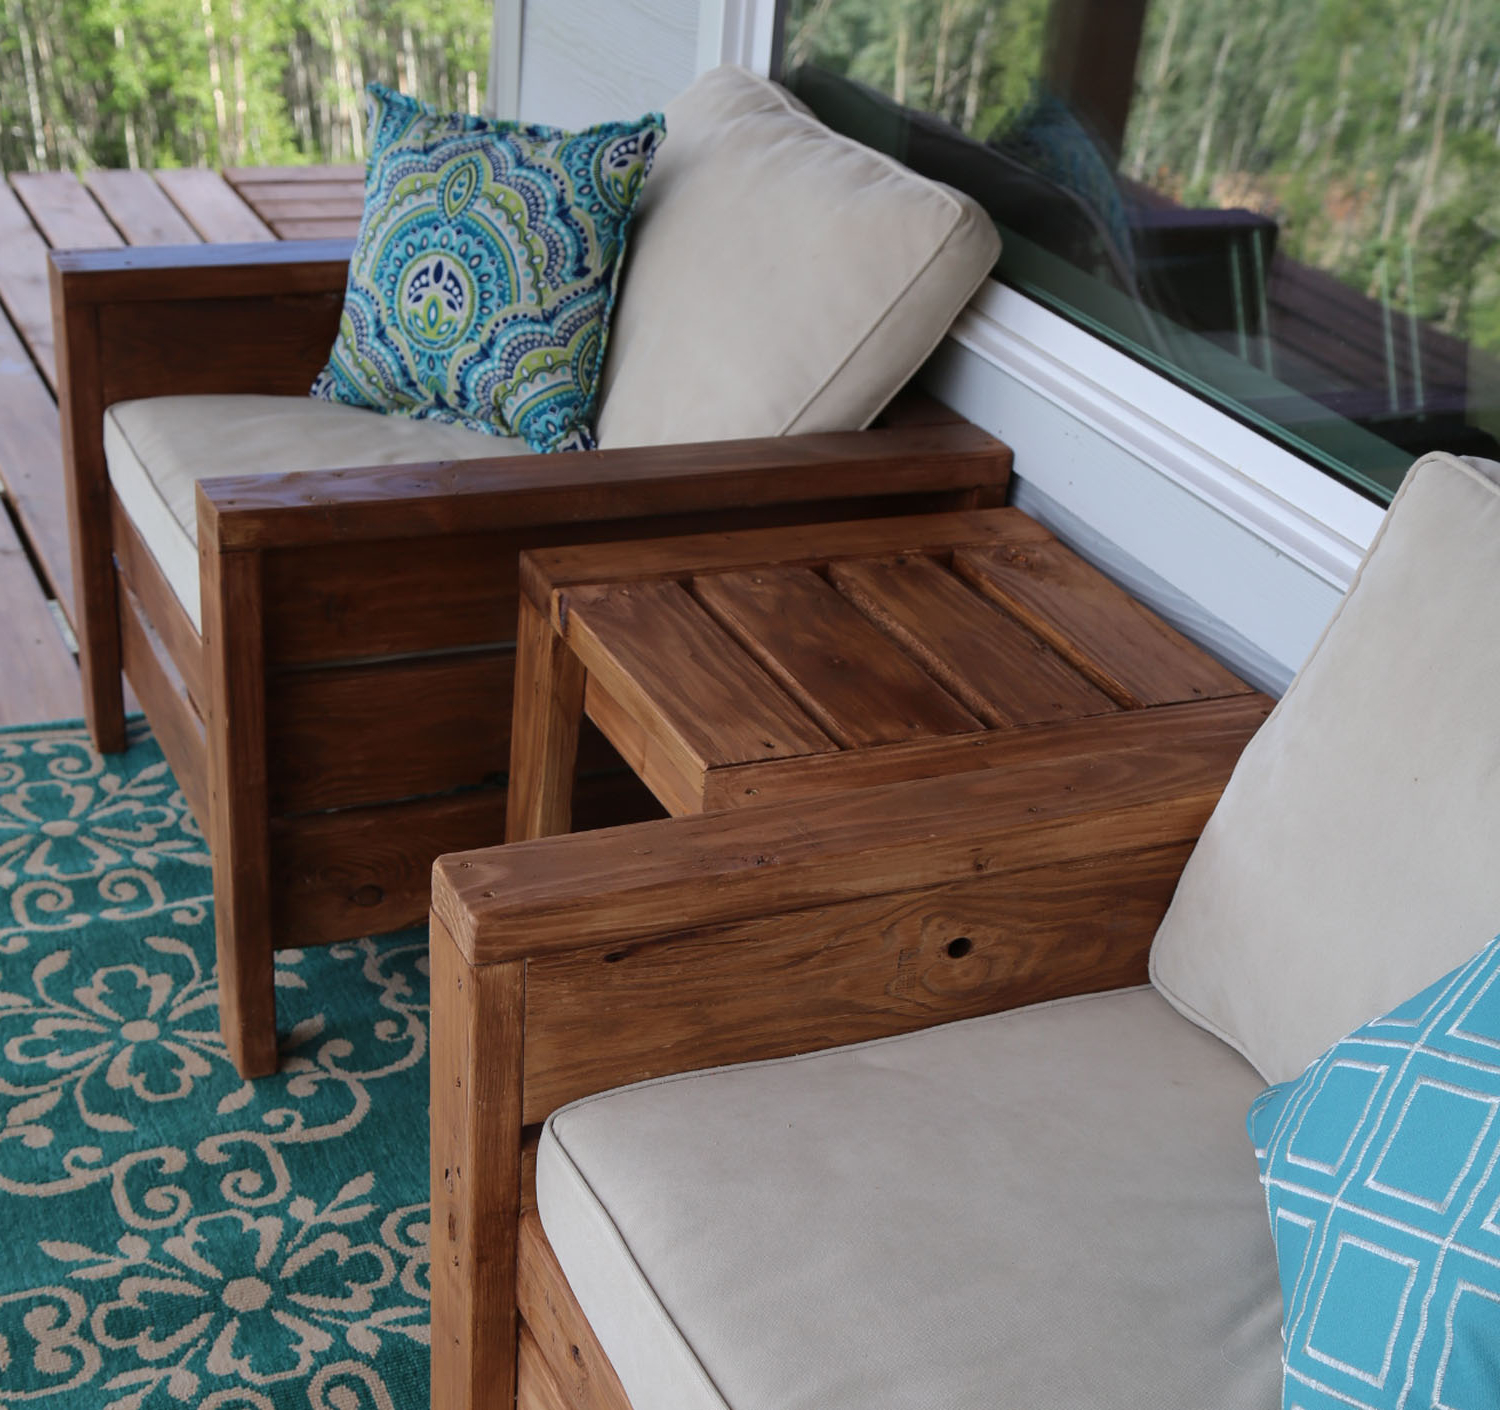 Ana White | Modern Outdoor Chair From 2X4S And 2X6S – Diy Projects Inside Chari Media Center Tables (Gallery 16 of 20)